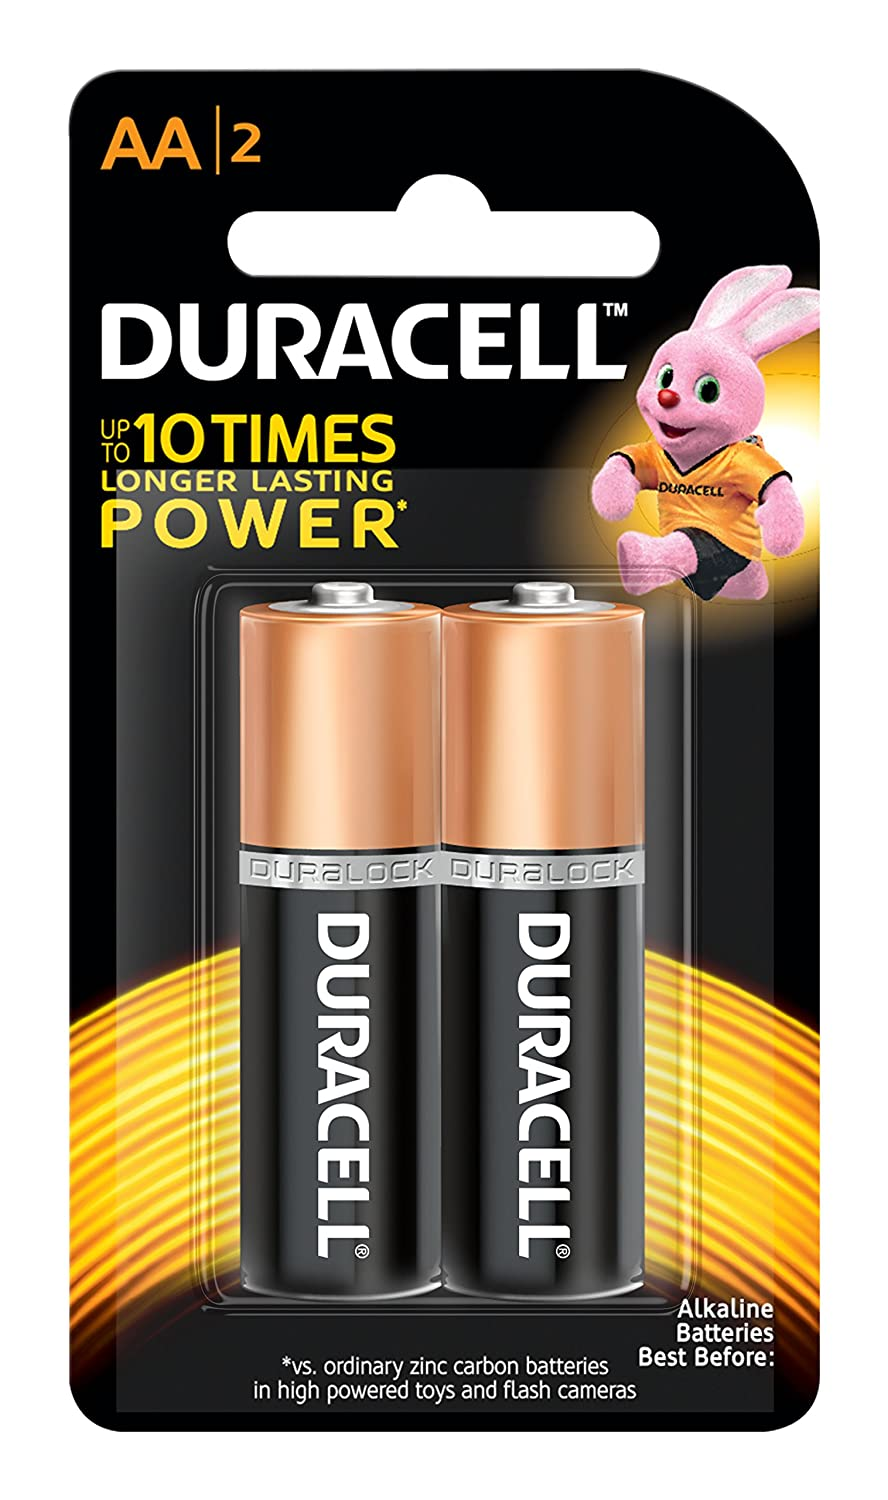 Duracell Alkaline AA Battery with Duralock Technology - 2 Pieces